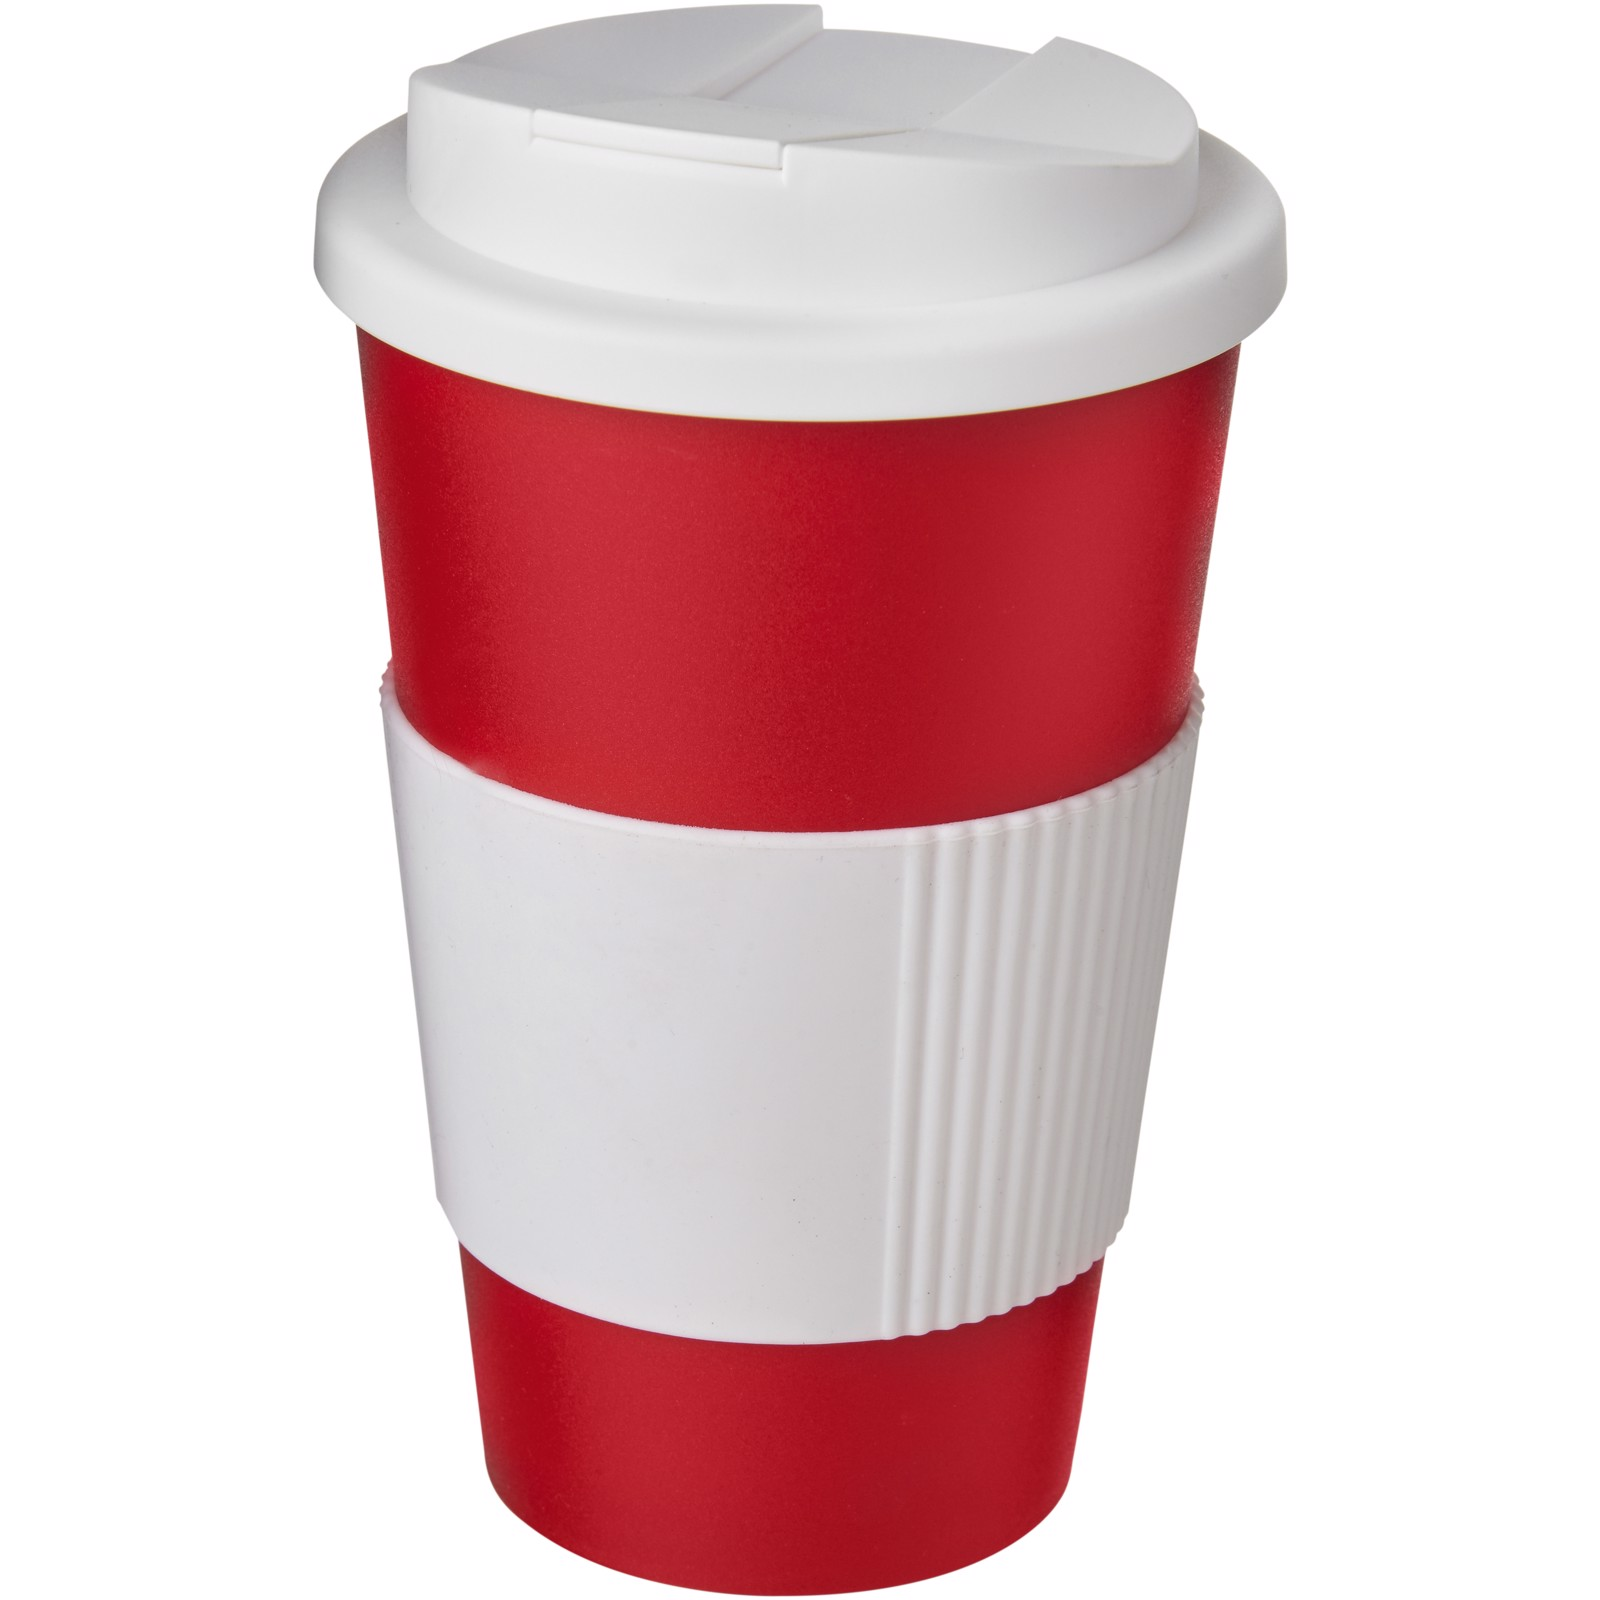 Americano® 350 ml tumbler with grip & spill-proof lid - Red / White